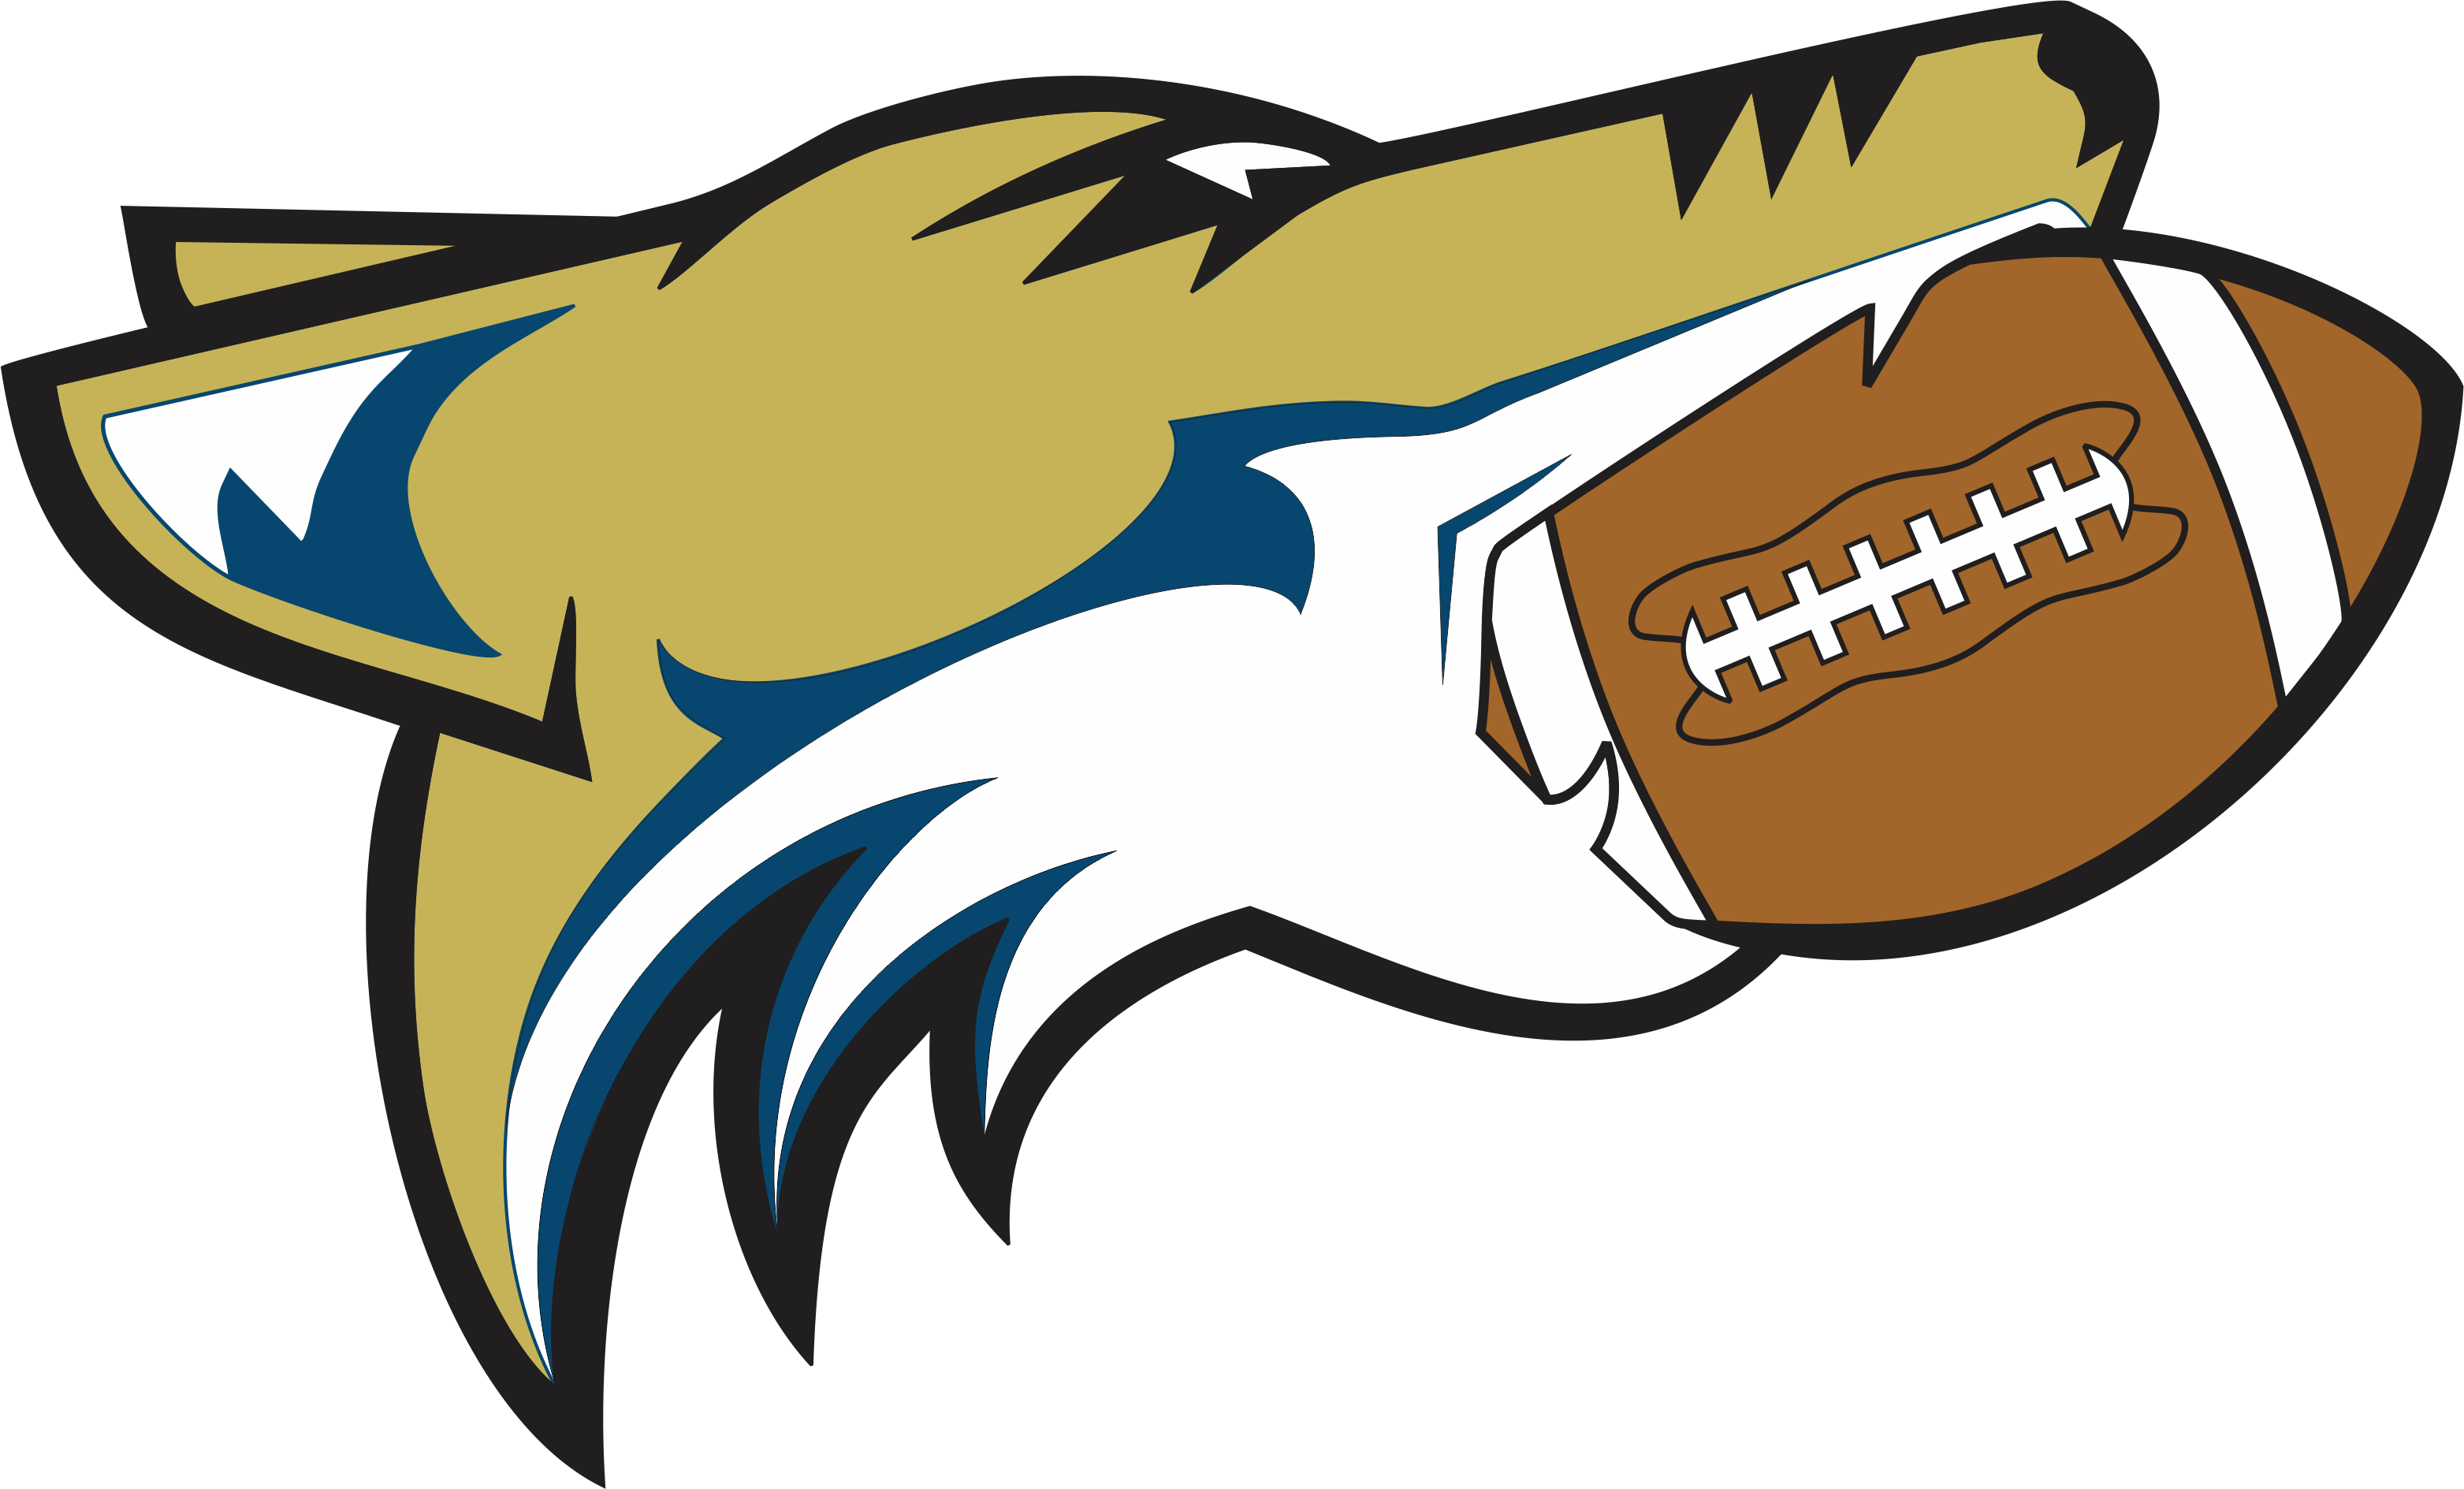 Clipart football hawk. About the hawks